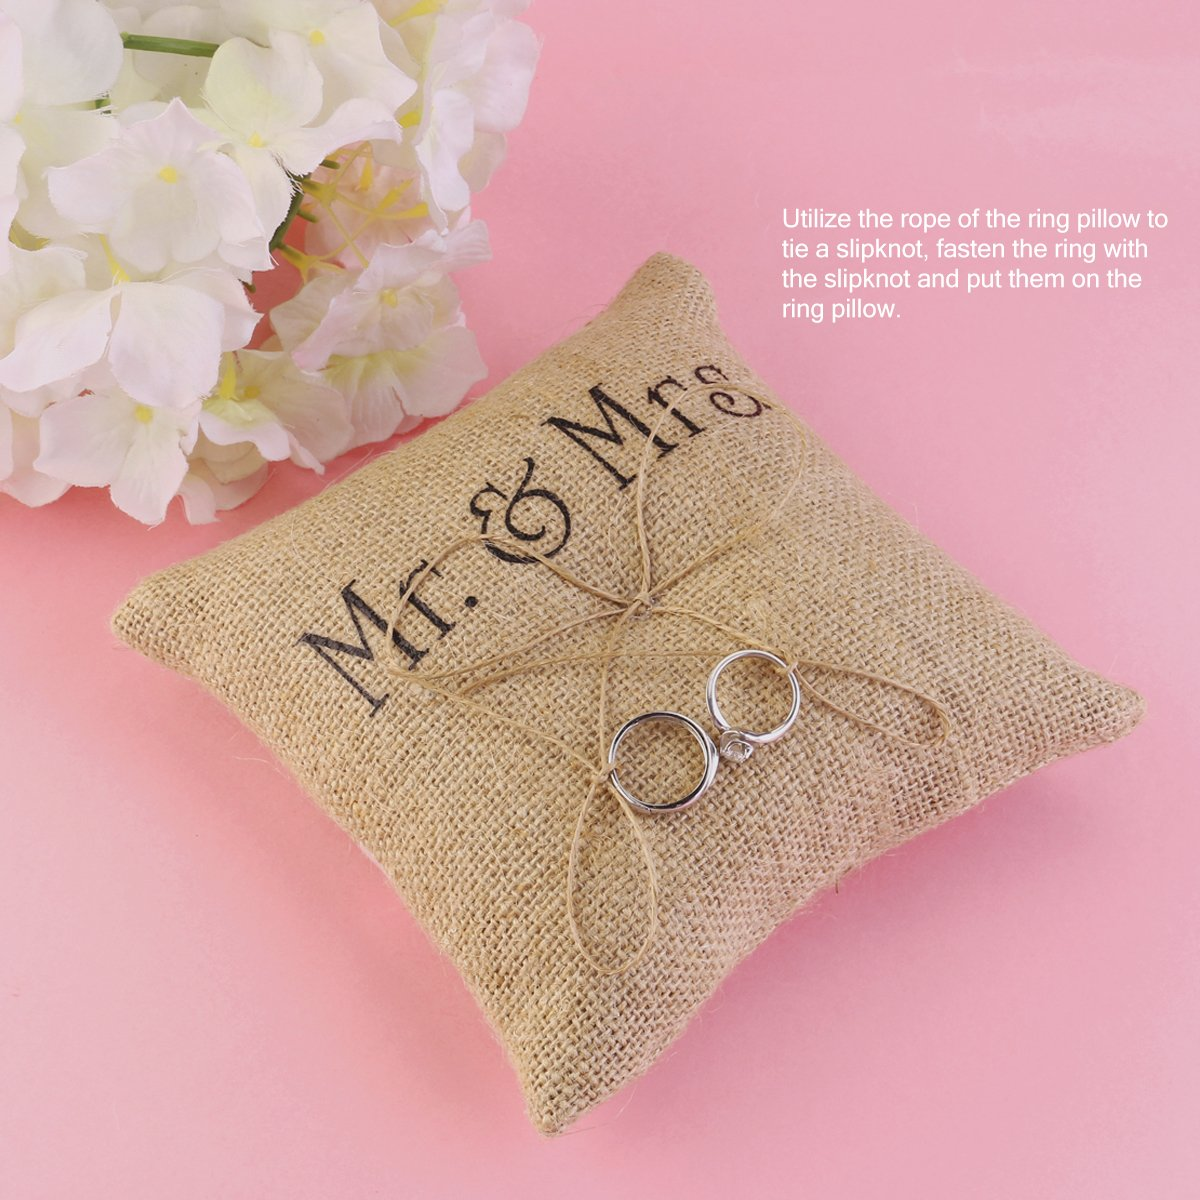 Amazon.com: Mr Mrs Burlap Jute Wedding Ring Cushion Ring Bearer ...